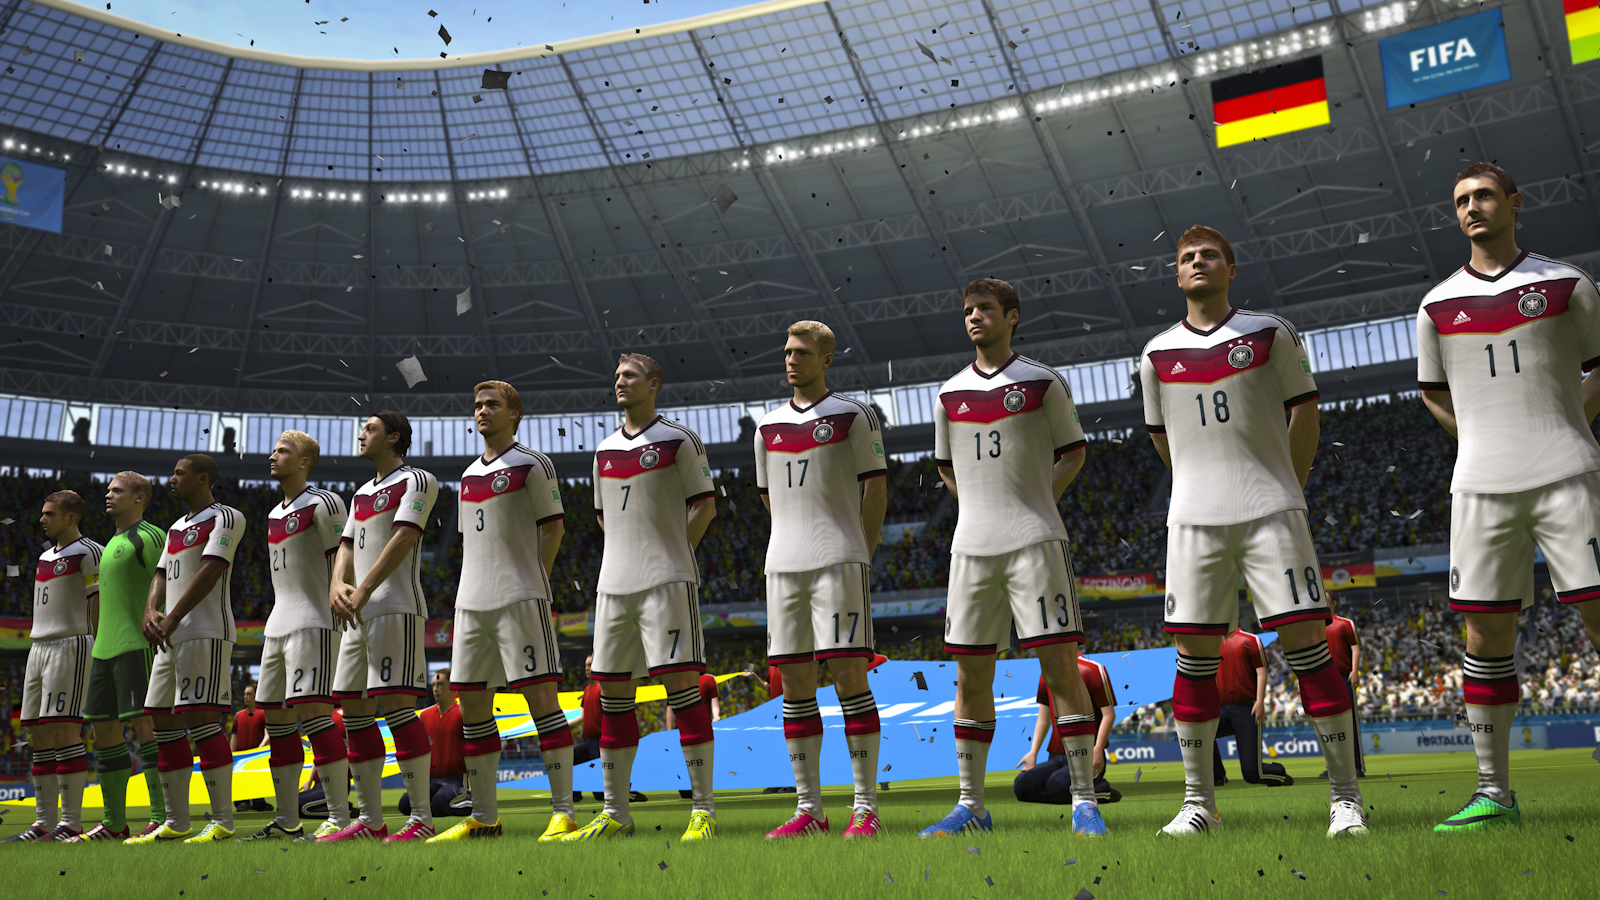 fifaworldcup2014_xbox360_ps3_germany_teamlineup